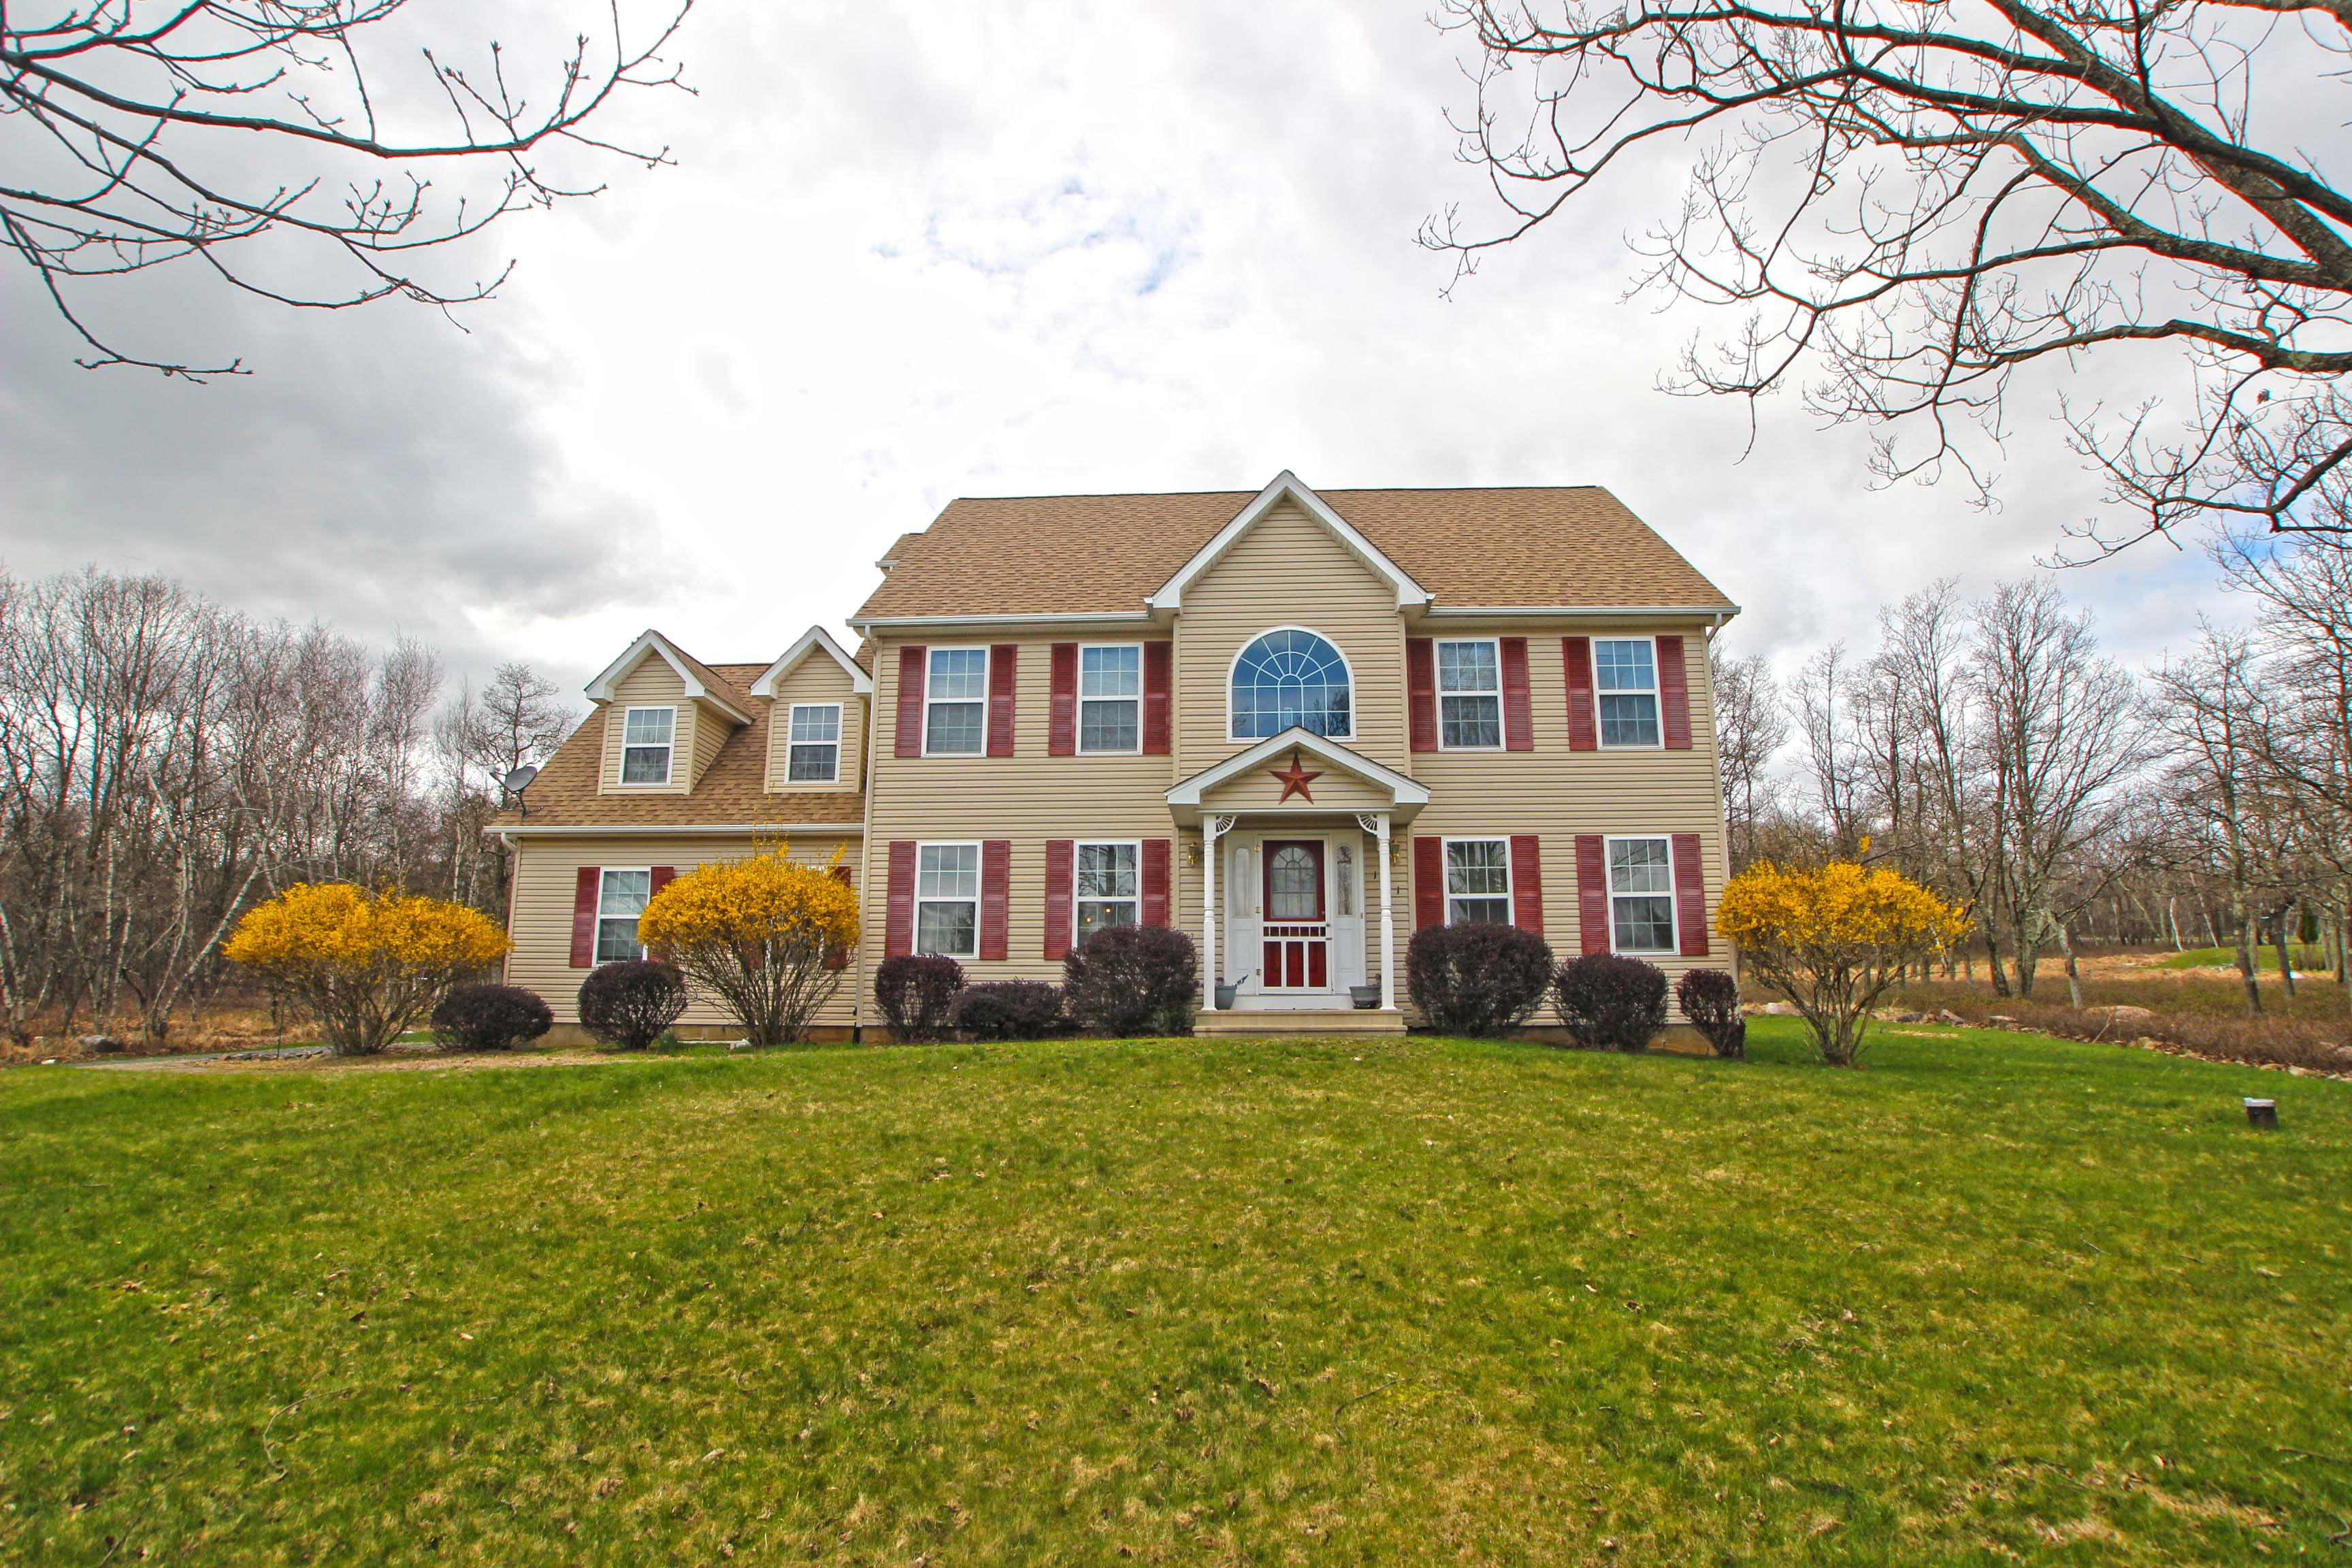 Albrightsville Home For Sale Just Listed in Valley View Estates!